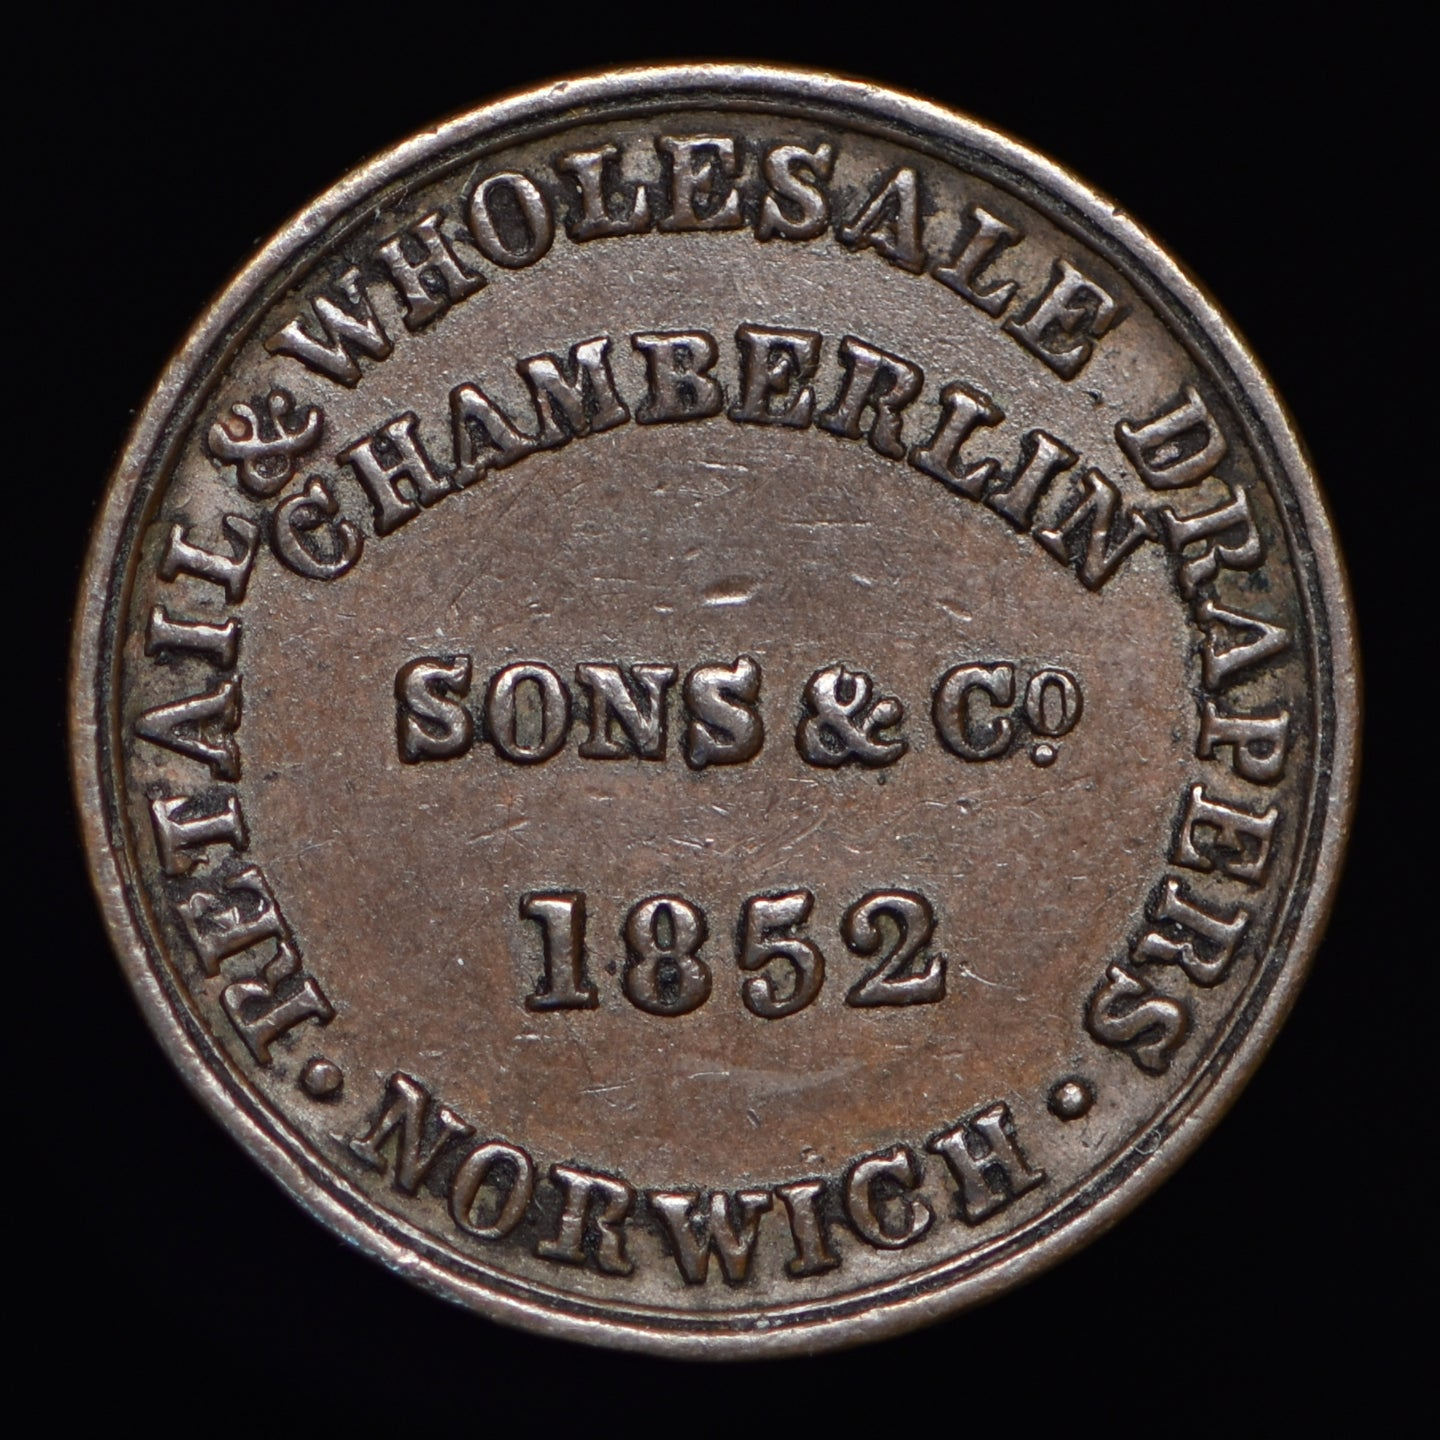 Norwich H Chamberlin & Sons (W. 3950)